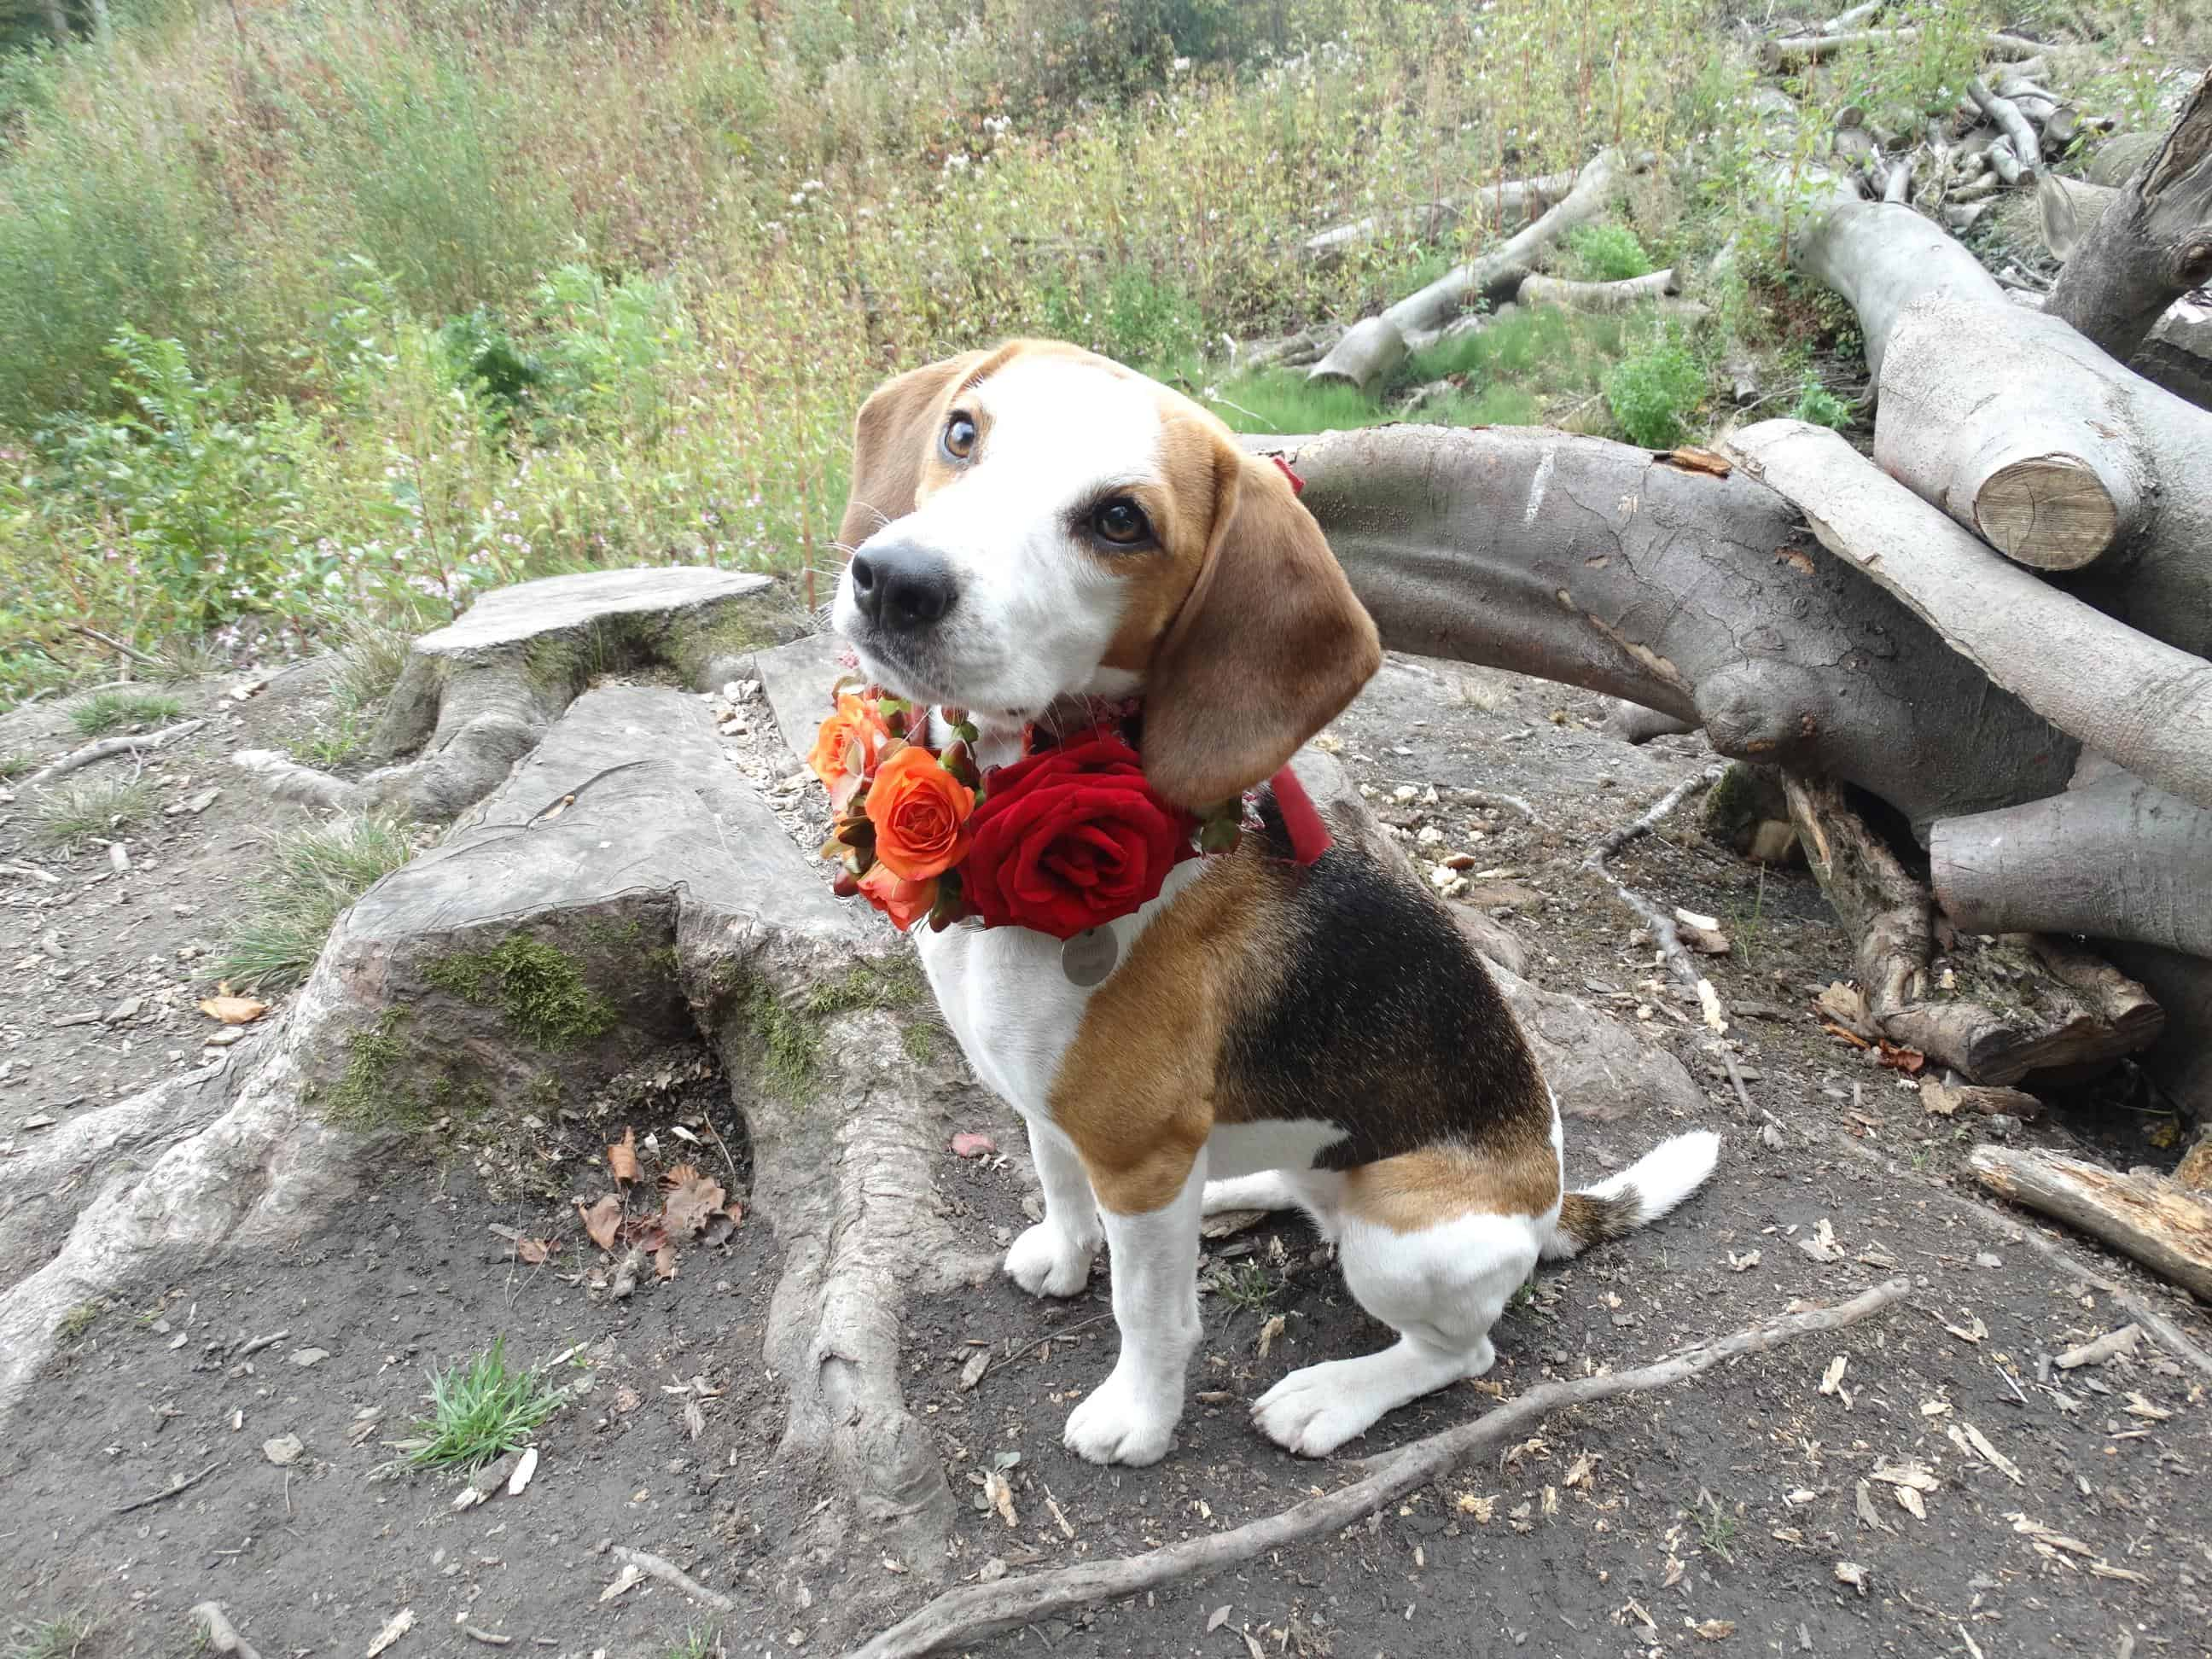 Sitting nicely - beagle flowers